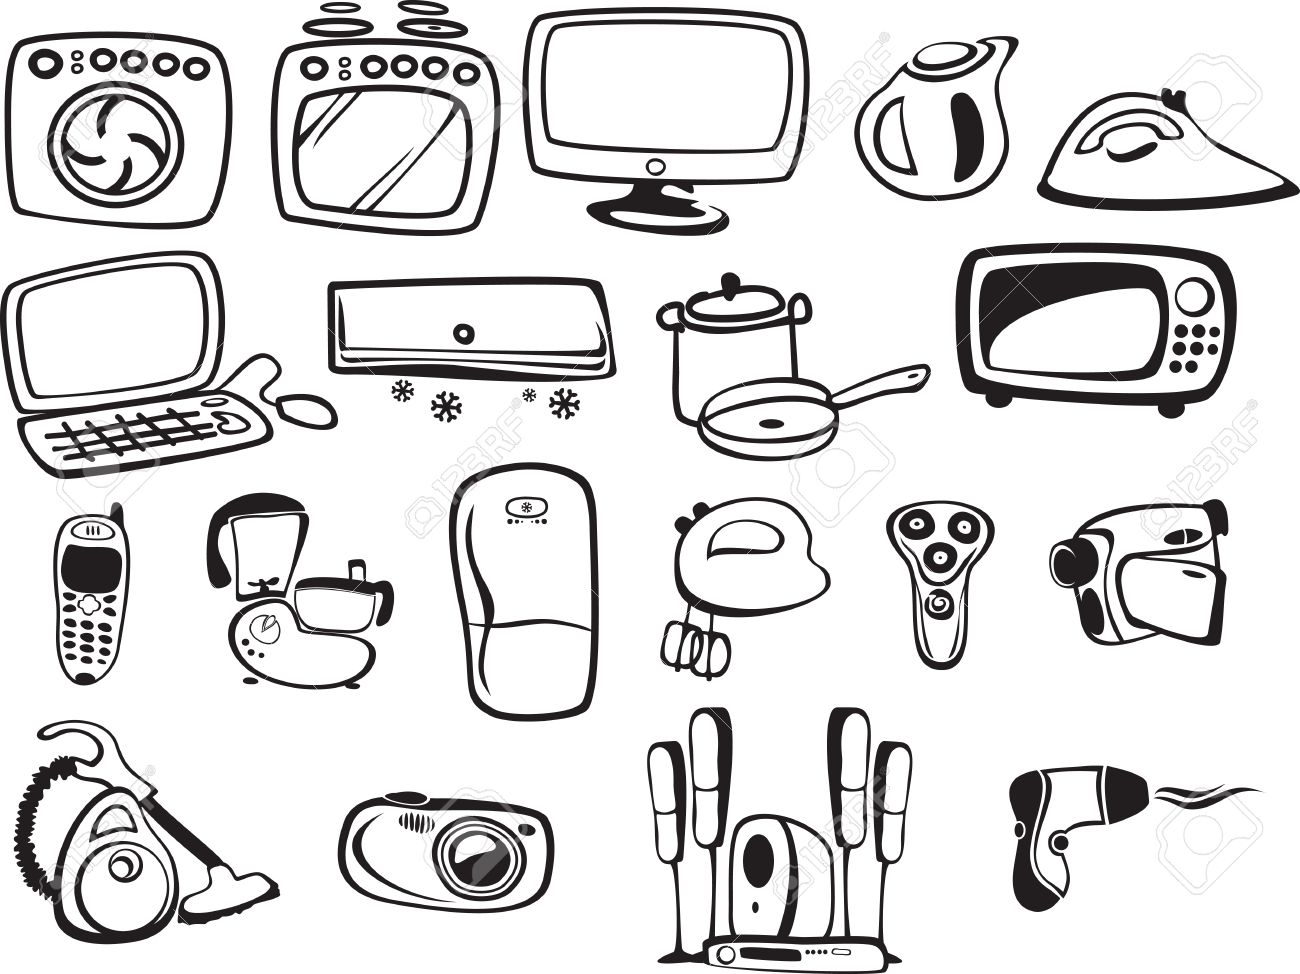 Symbols Of Household Appliances And Electronics Royalty Free ...